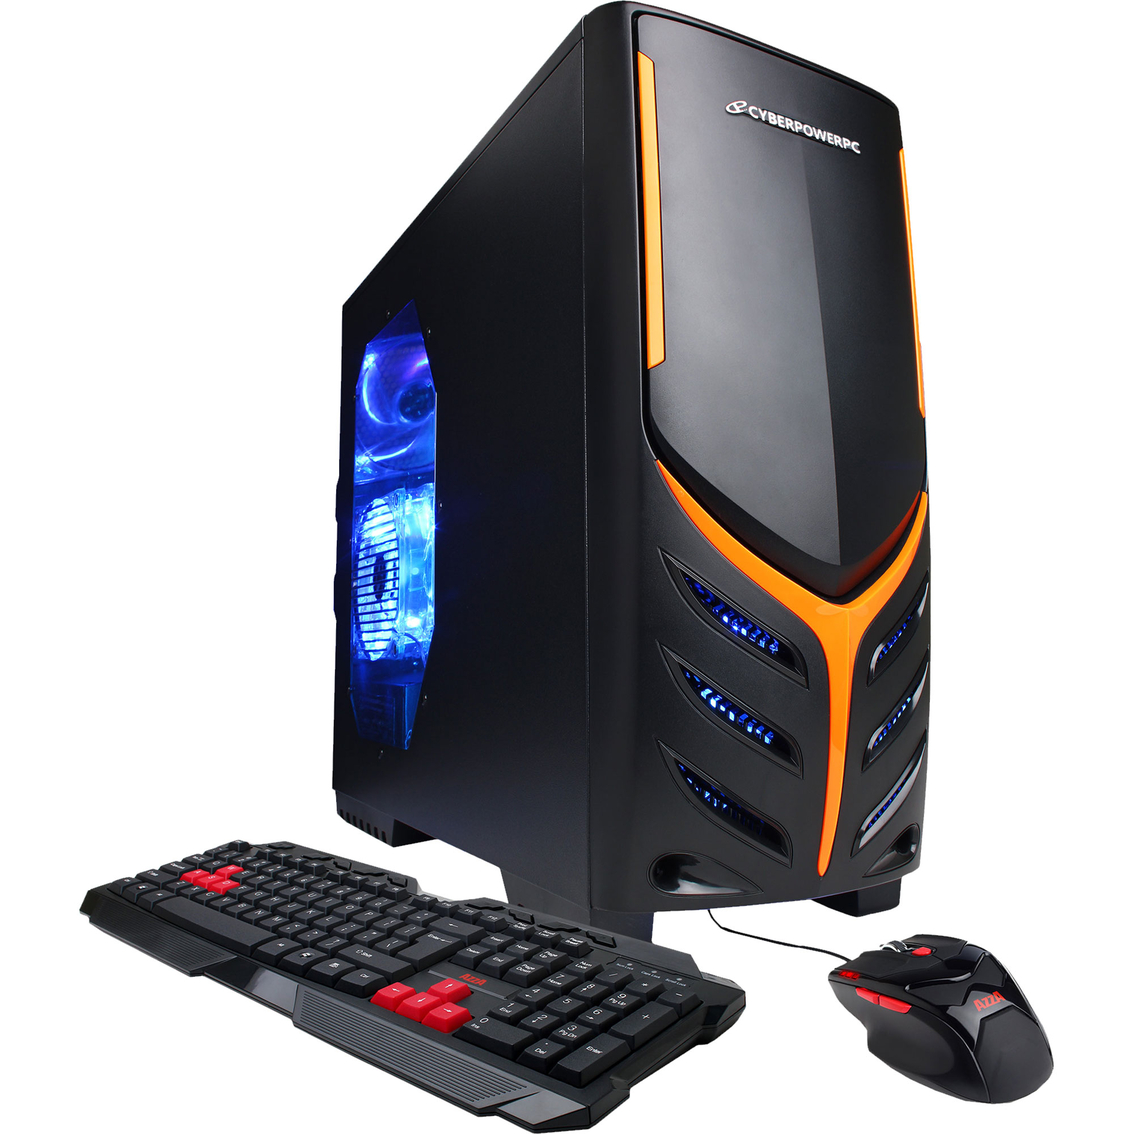 cyberpower pc gamer xtreme gxi680 intel i5 2tb. Black Bedroom Furniture Sets. Home Design Ideas